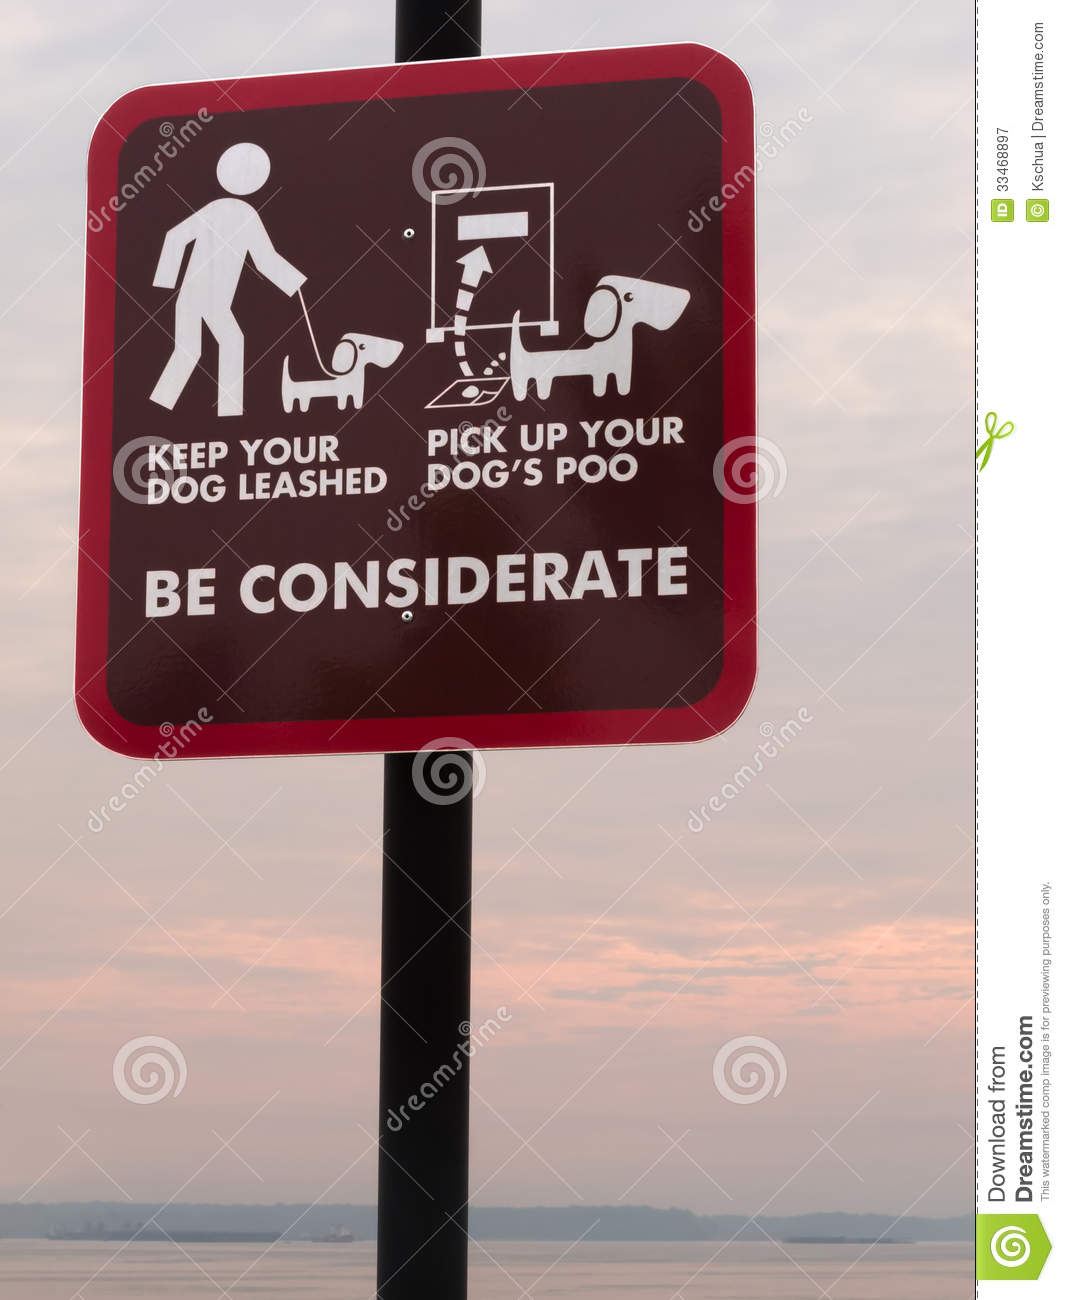 be considerate sign royalty free stock photography image